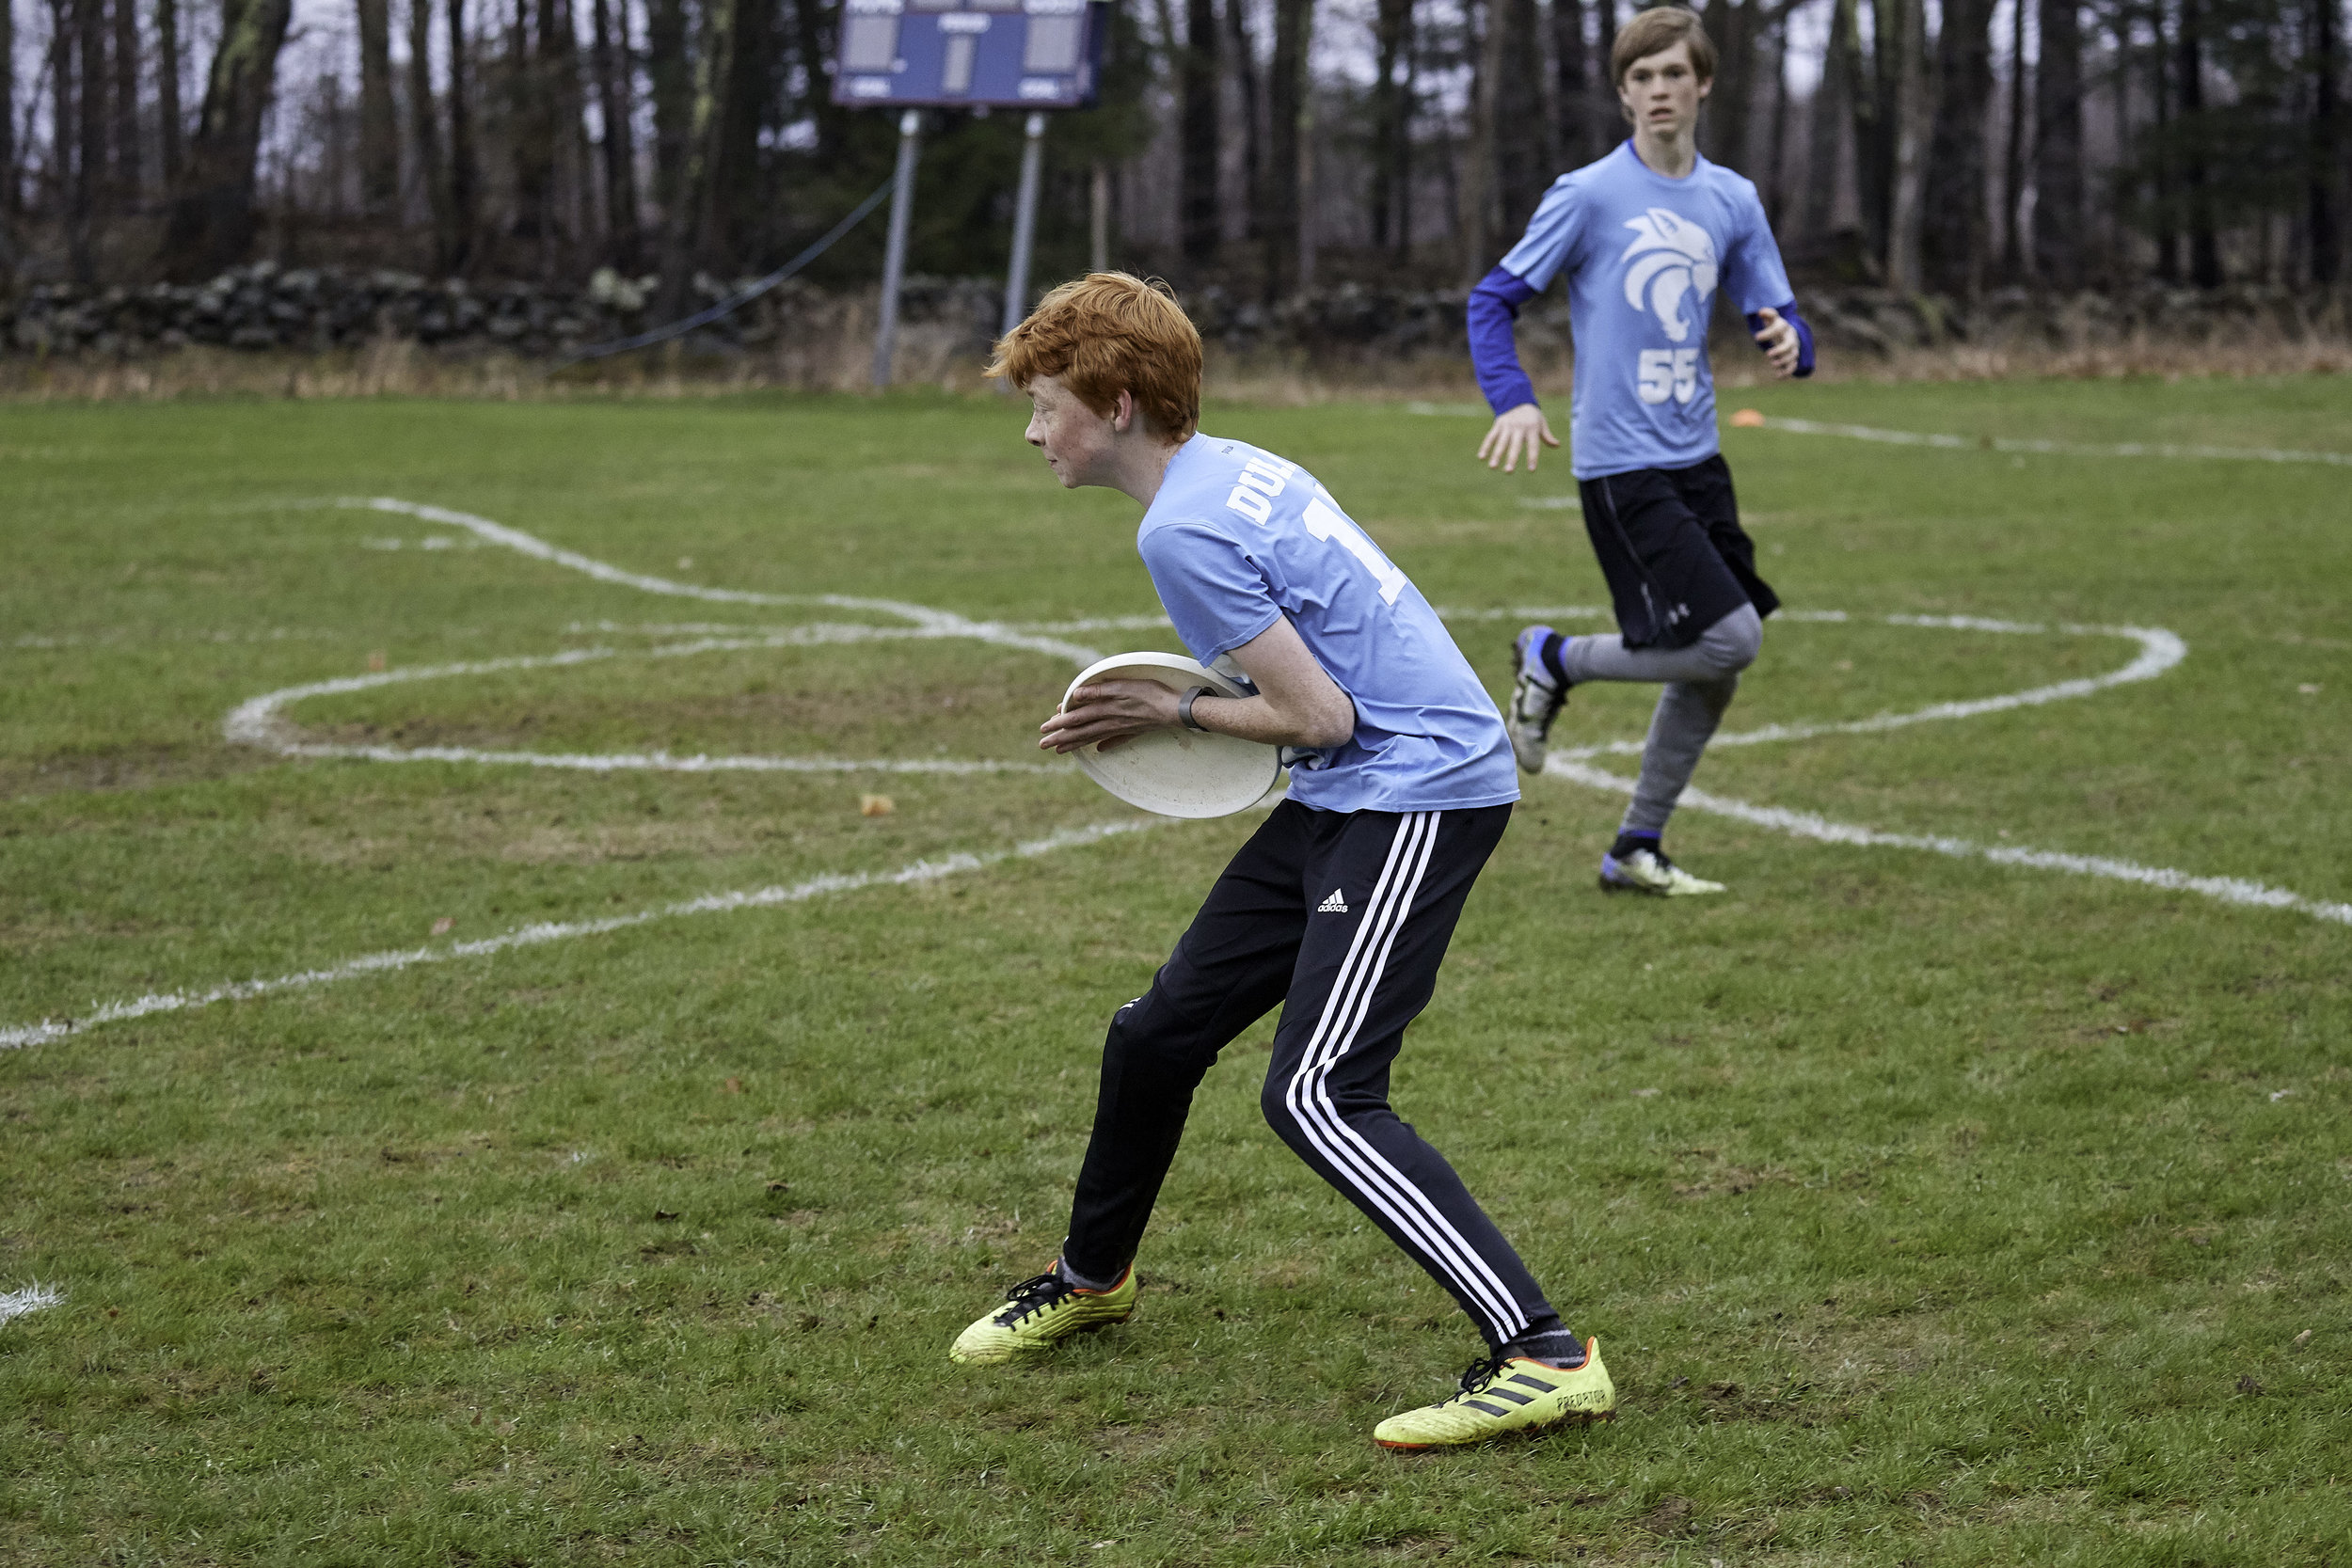 Ultimate Frisbee vs. Eagle Hill School - May 3, 2019 - 188885.jpg